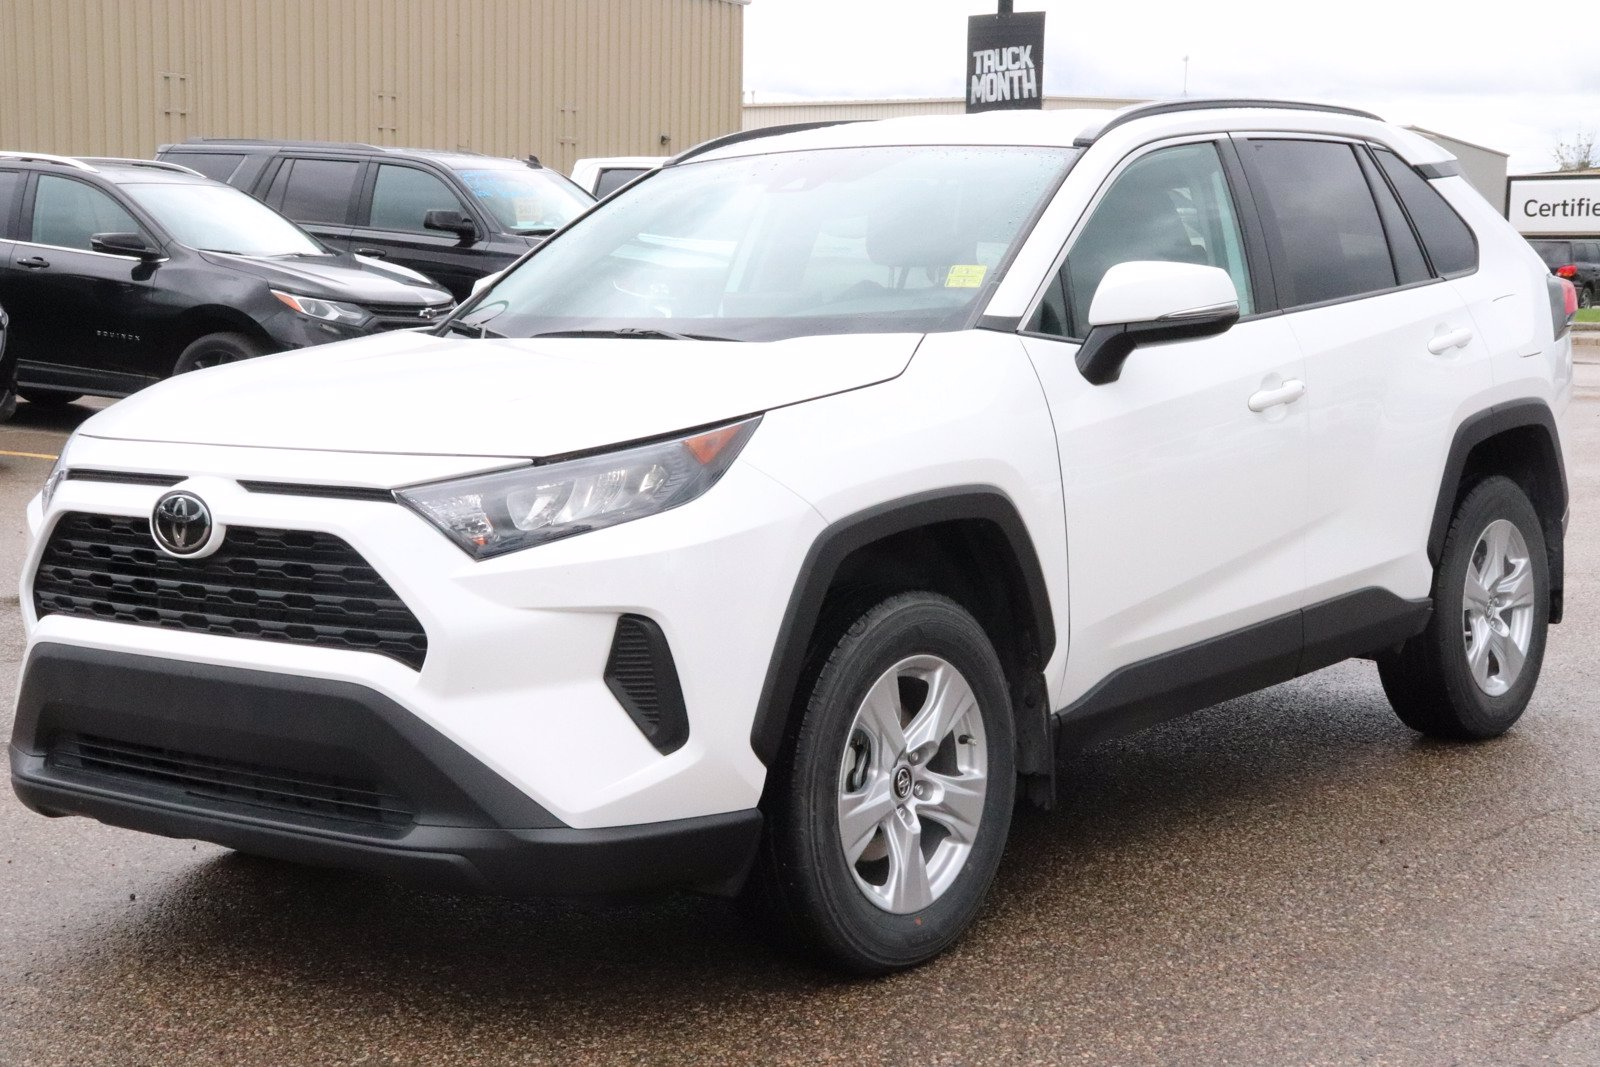 Certified Pre-Owned 2019 Toyota RAV4 LE - Heated Seats, Bluetooth, Back Up Camera